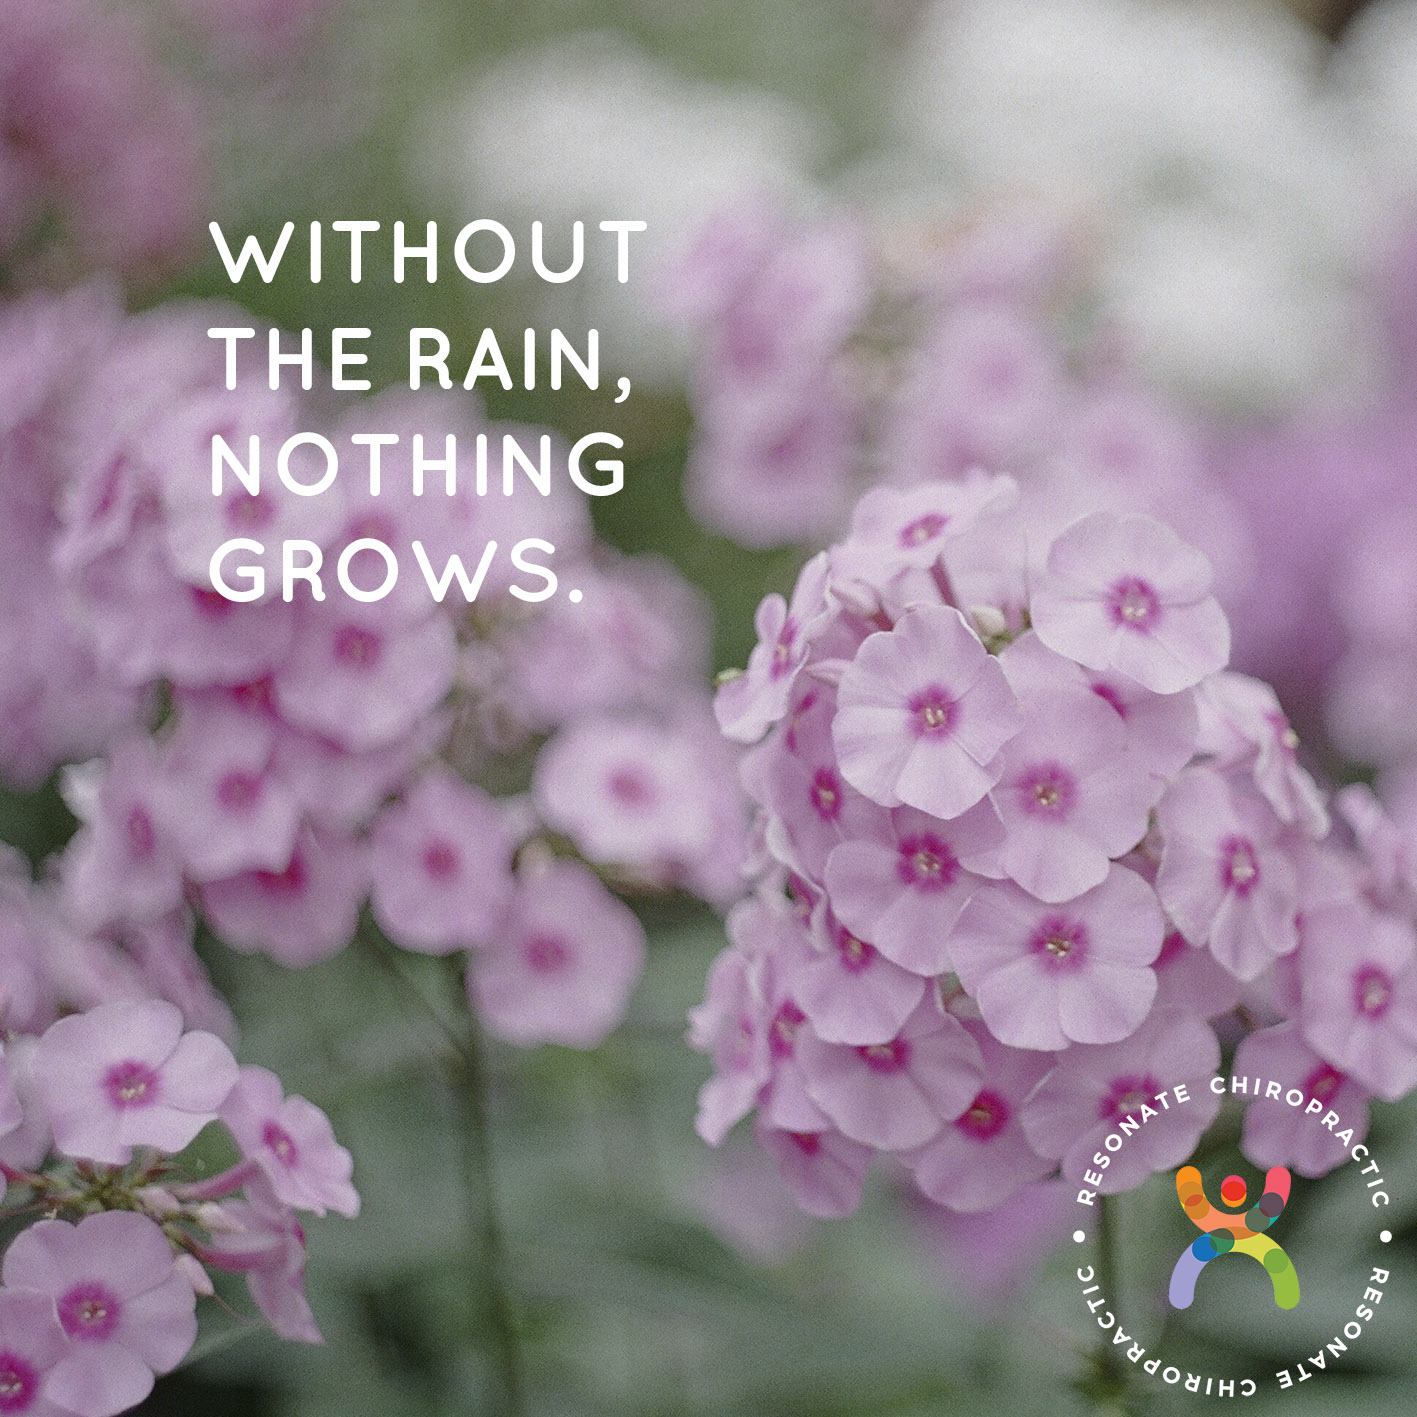 Without the rain, nothing grows.